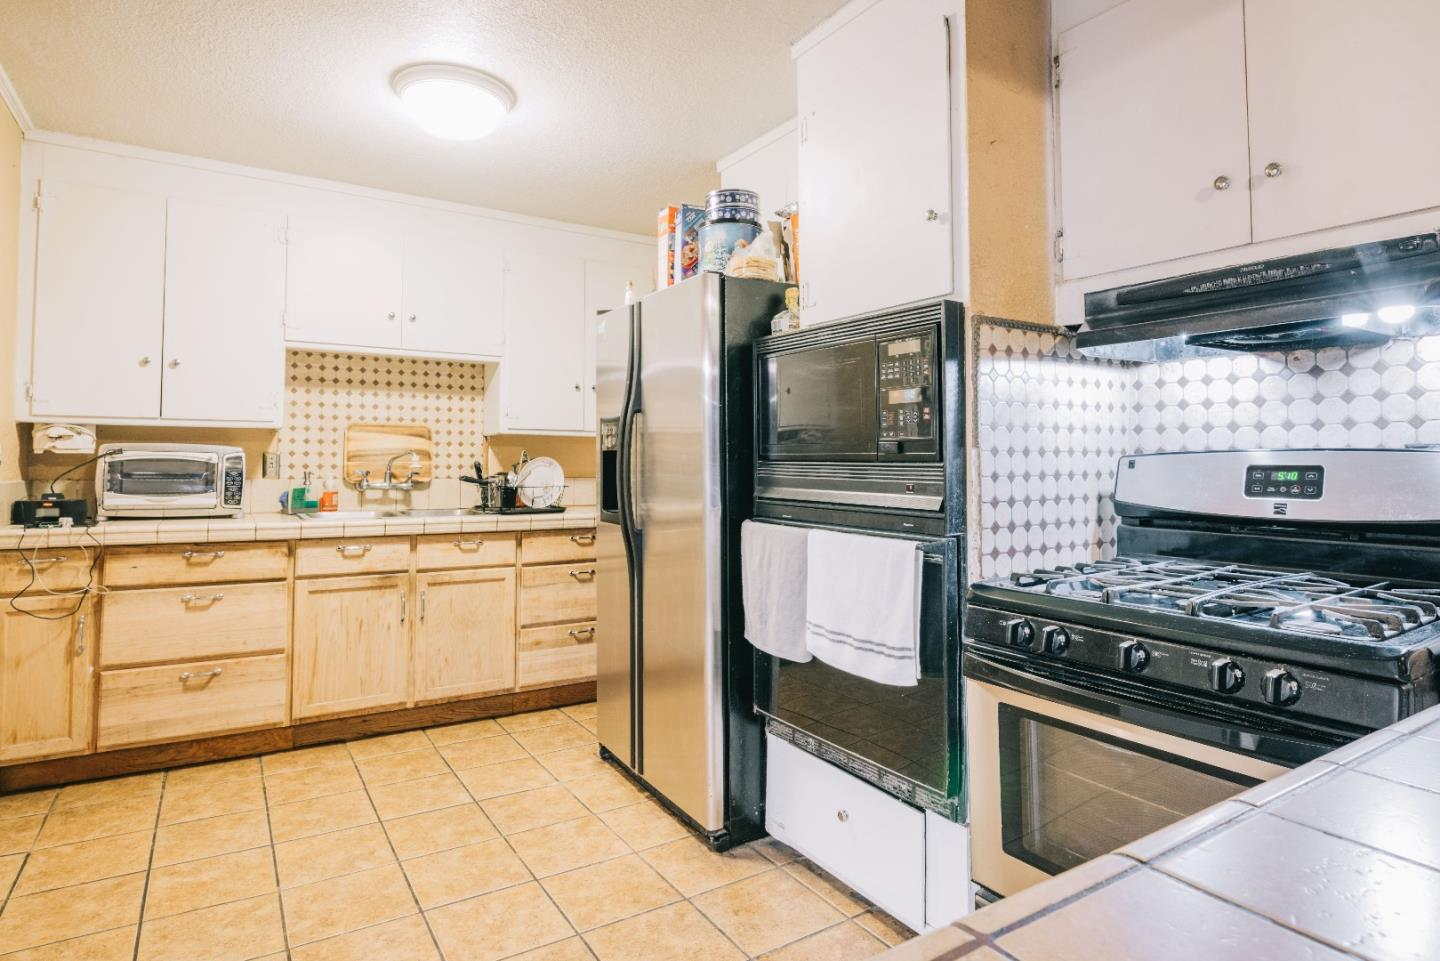 28448 Cole Place Hayward Ca 94544 Spacious Home In One Of The Most Accessible Locations Bay Area Conveniently Located Near Schools